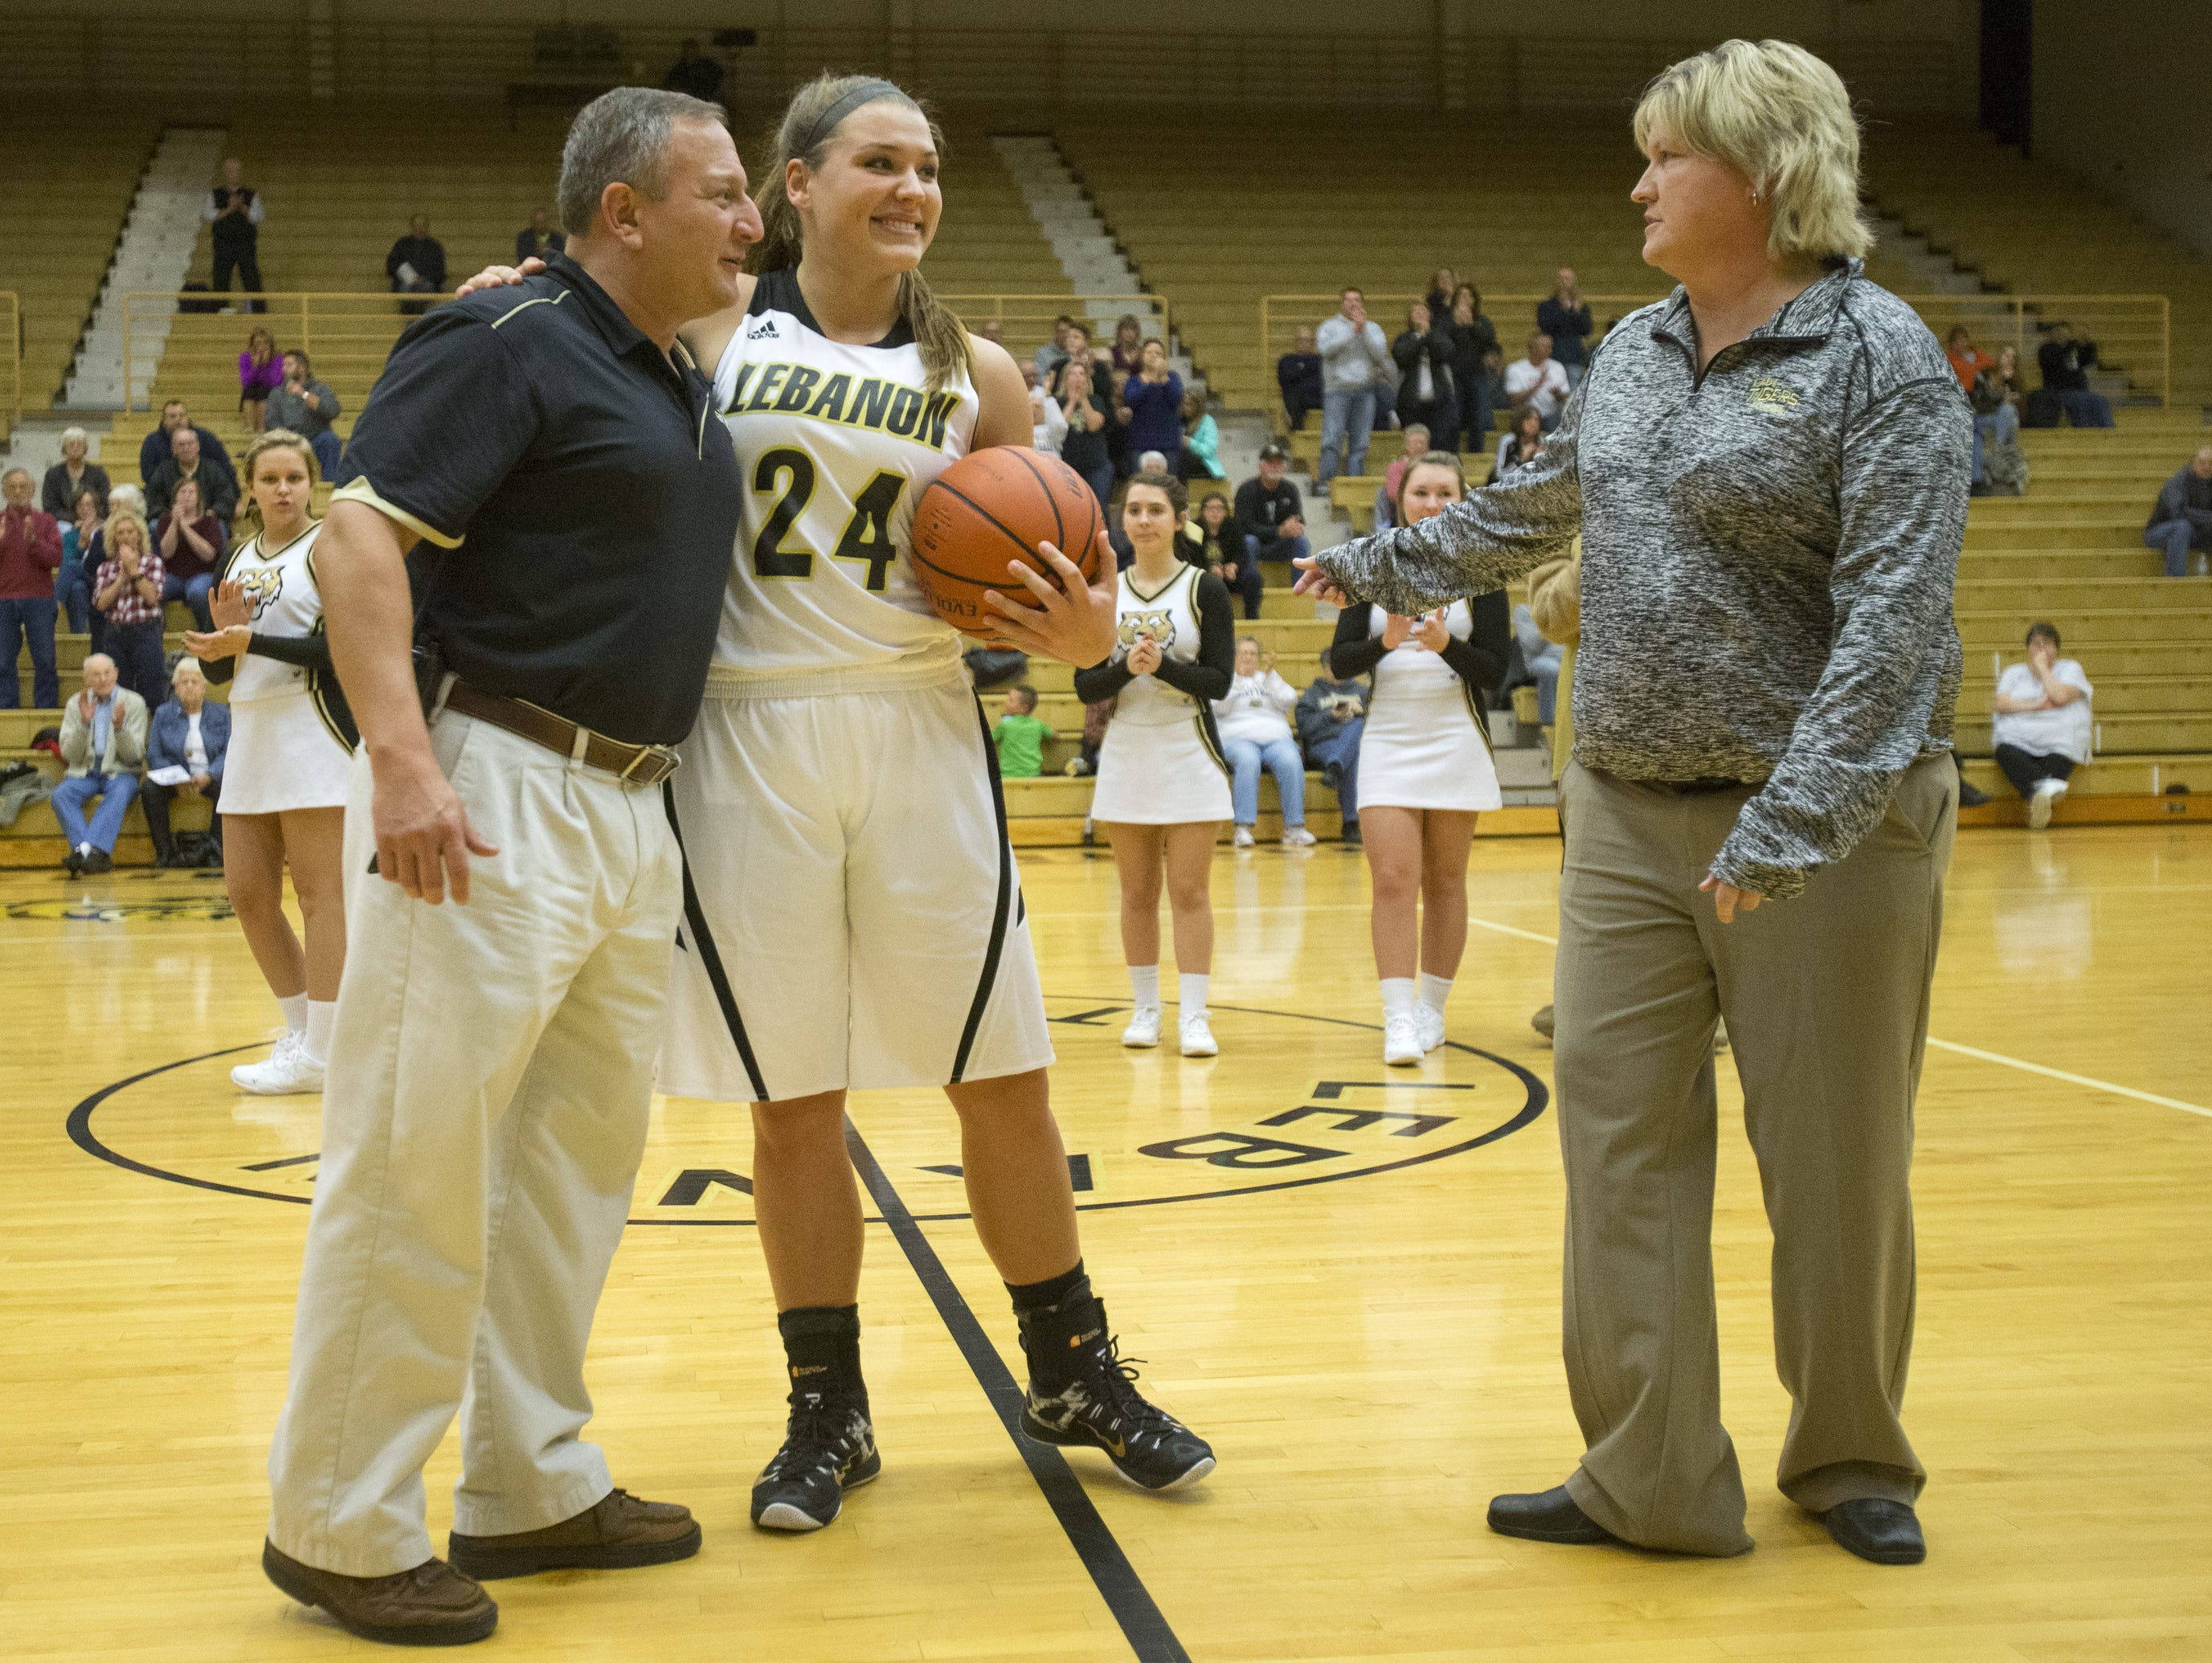 Kristen Spolyar is recognized by Lebanon AD Phil Levine (left) and coach Beth DeVinney after scoring her 2,000th point.